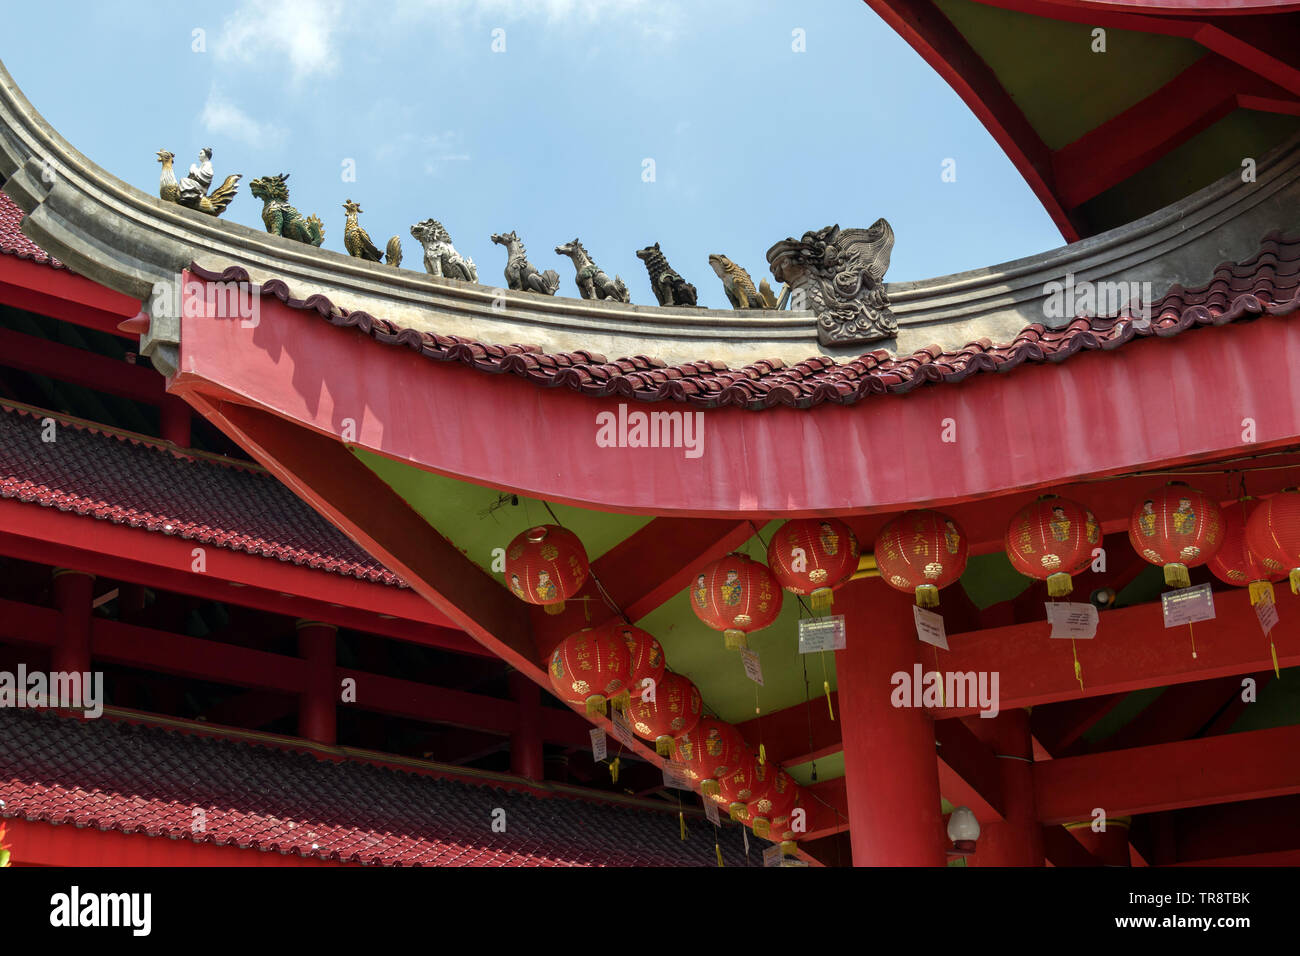 Sam Poo Kong High Resolution Stock Photography And Images Alamy